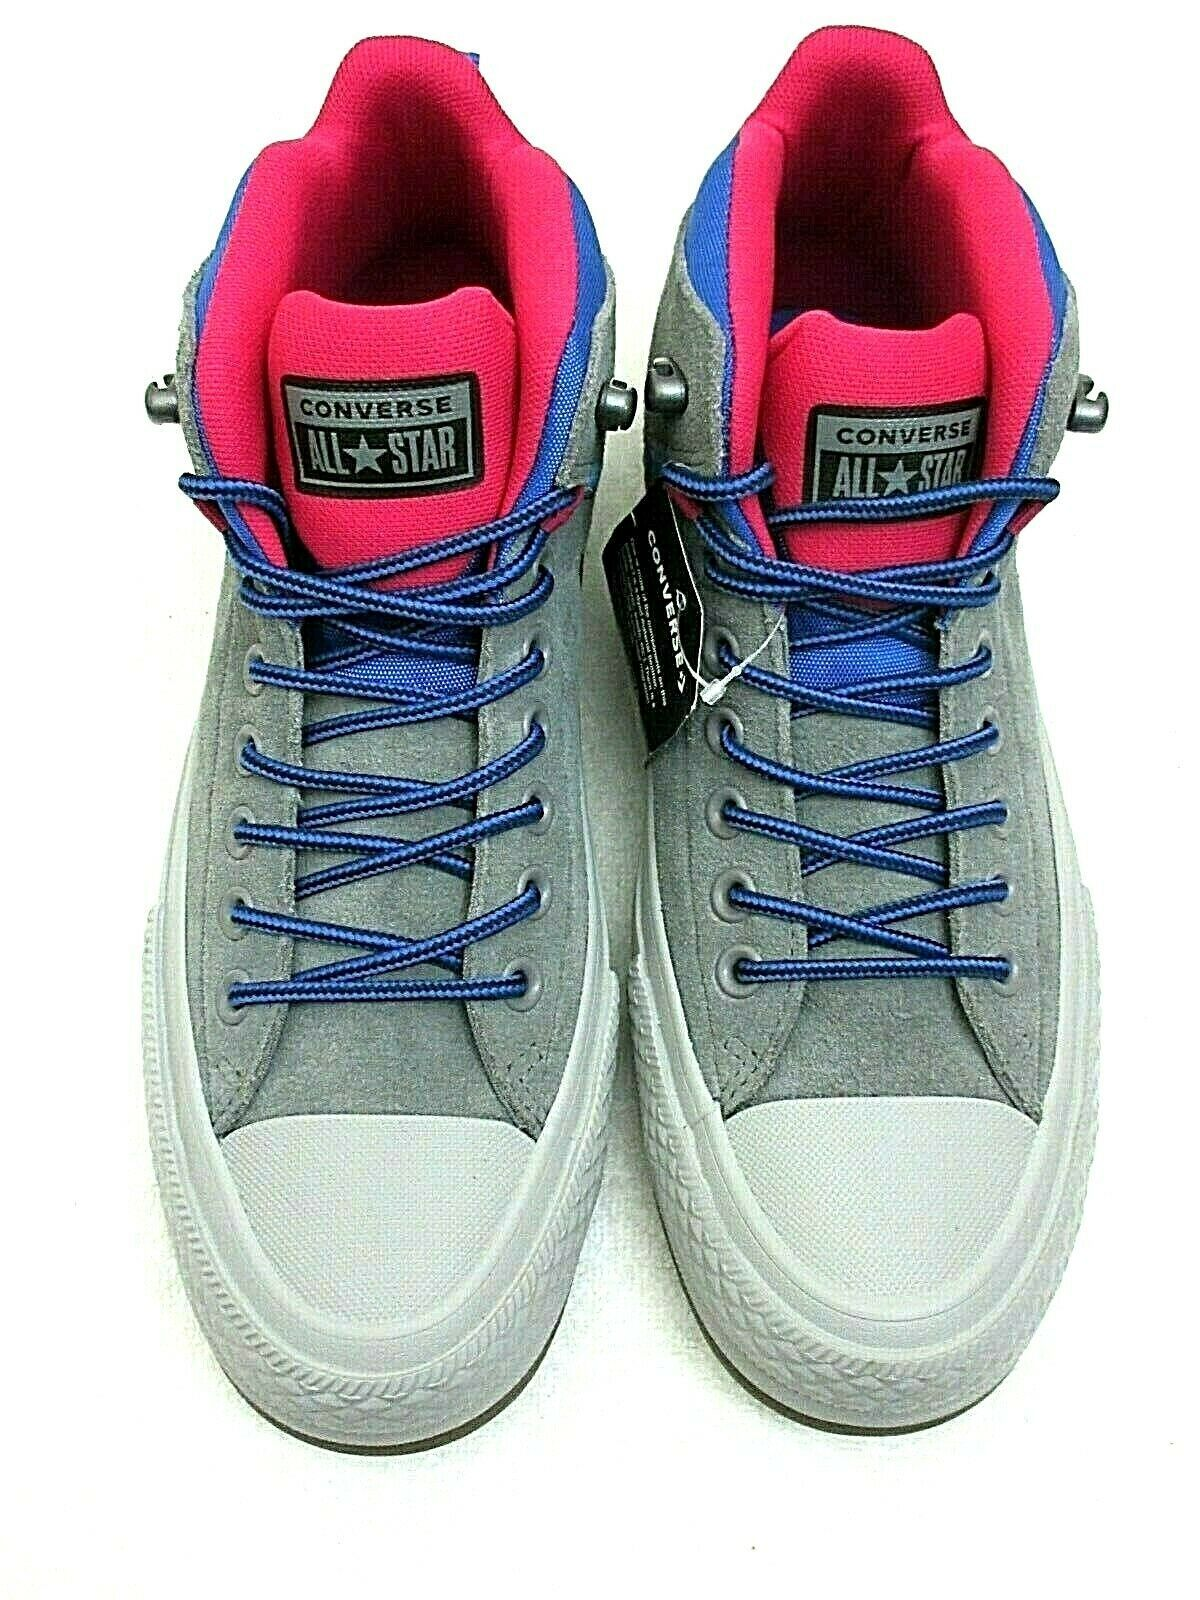 Primary image for Converse Mens CTAS Street Boot Hi Hiking Casual Shoes Grey Blue Pink Size 8.5